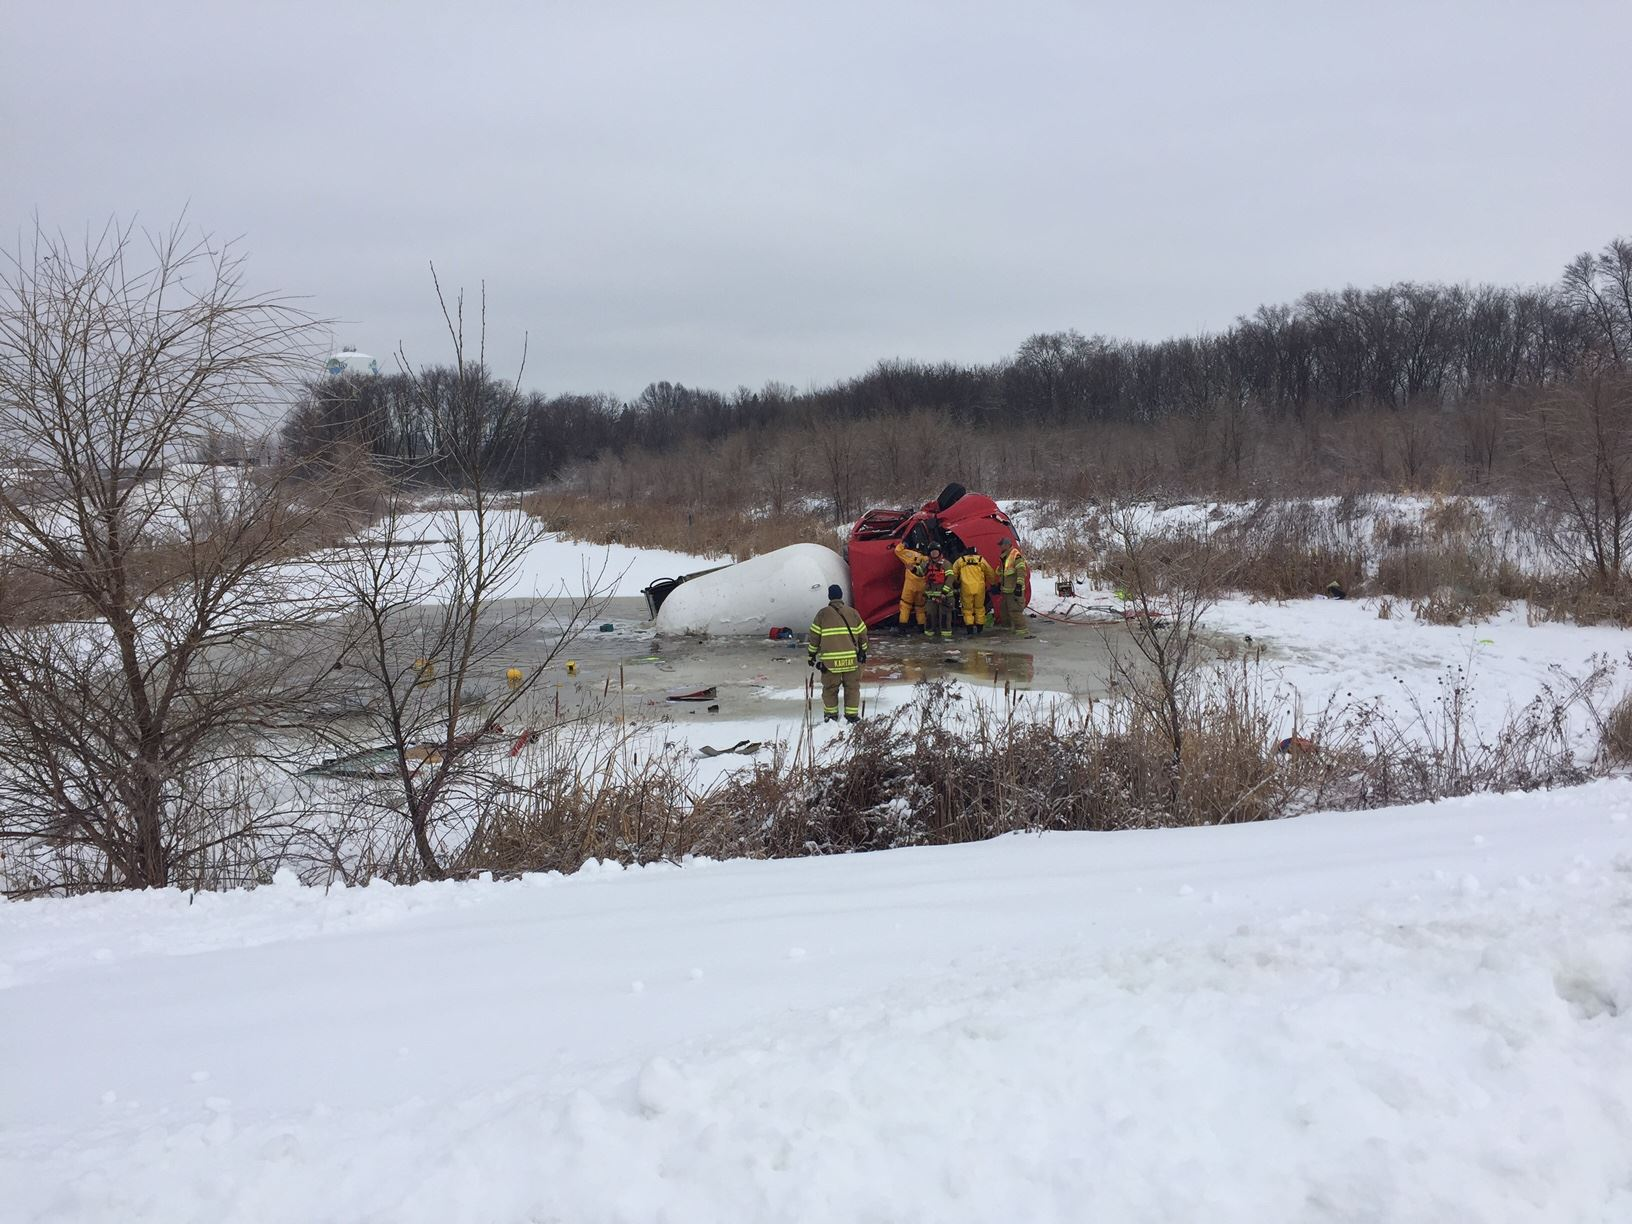 Propane truck in holding pond